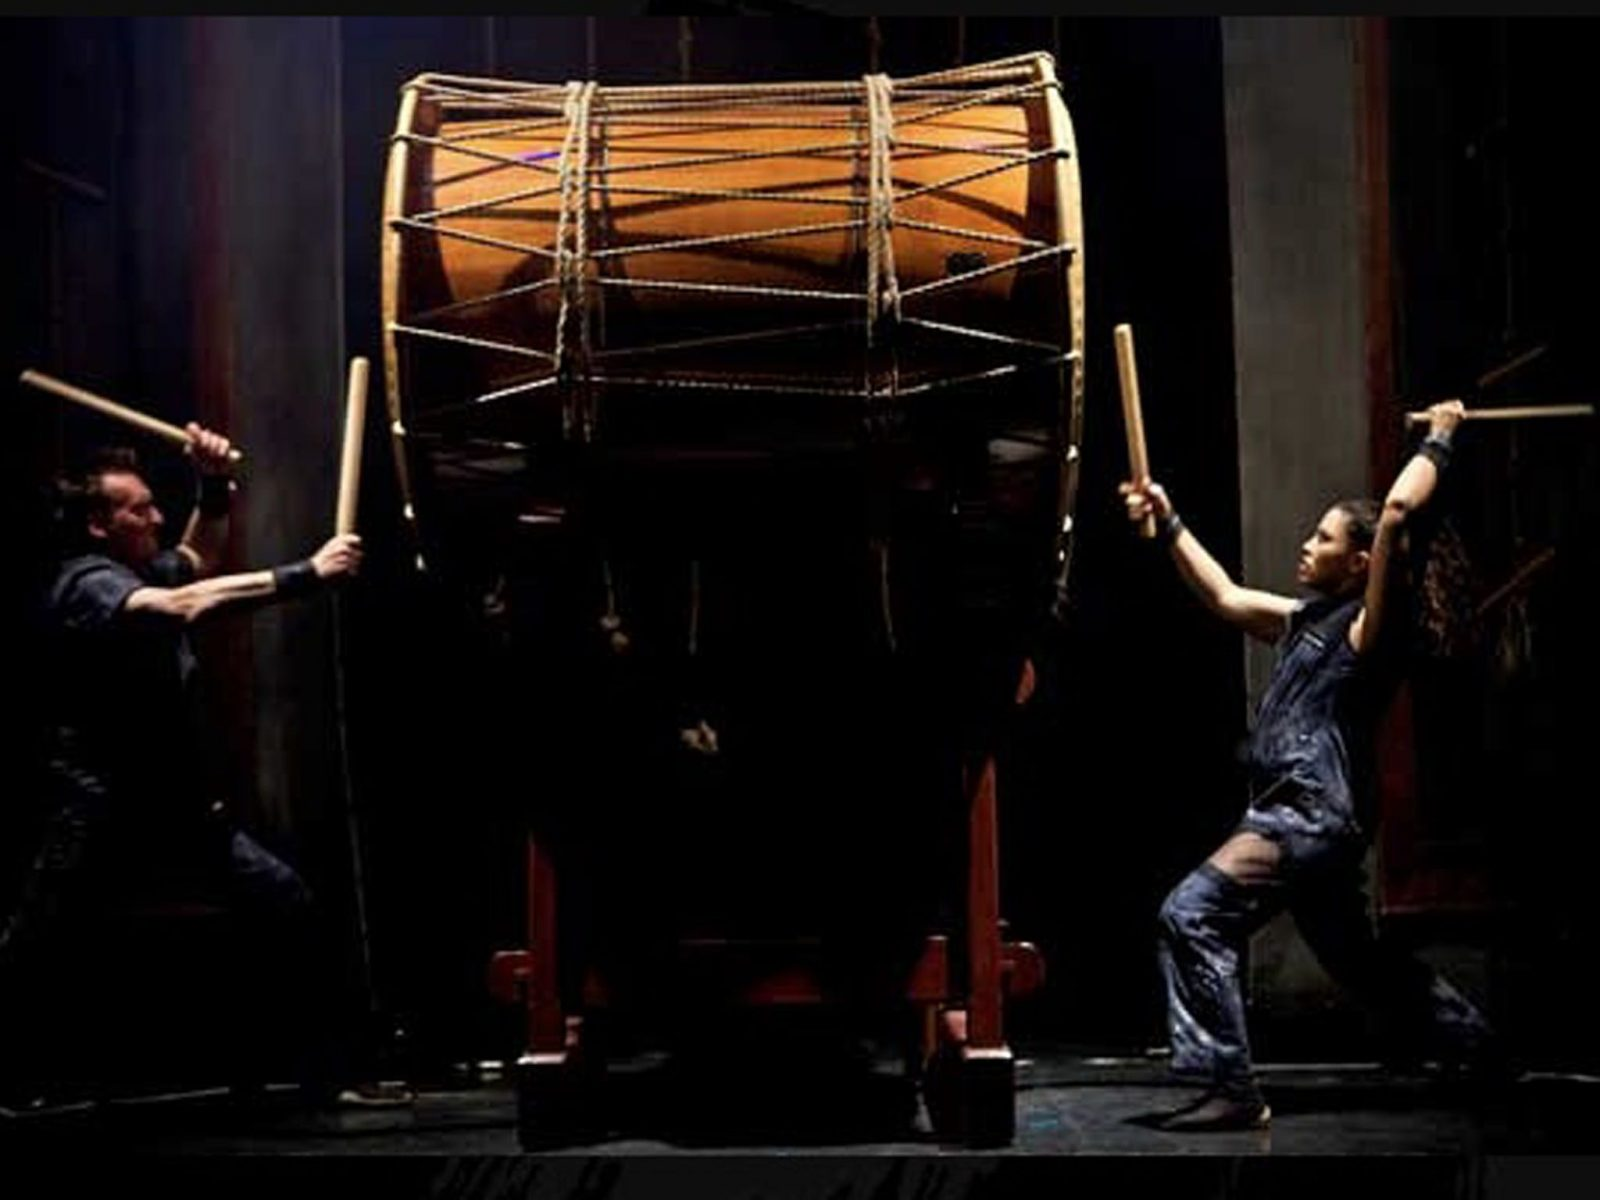 Fusion Taiko Drums from UK